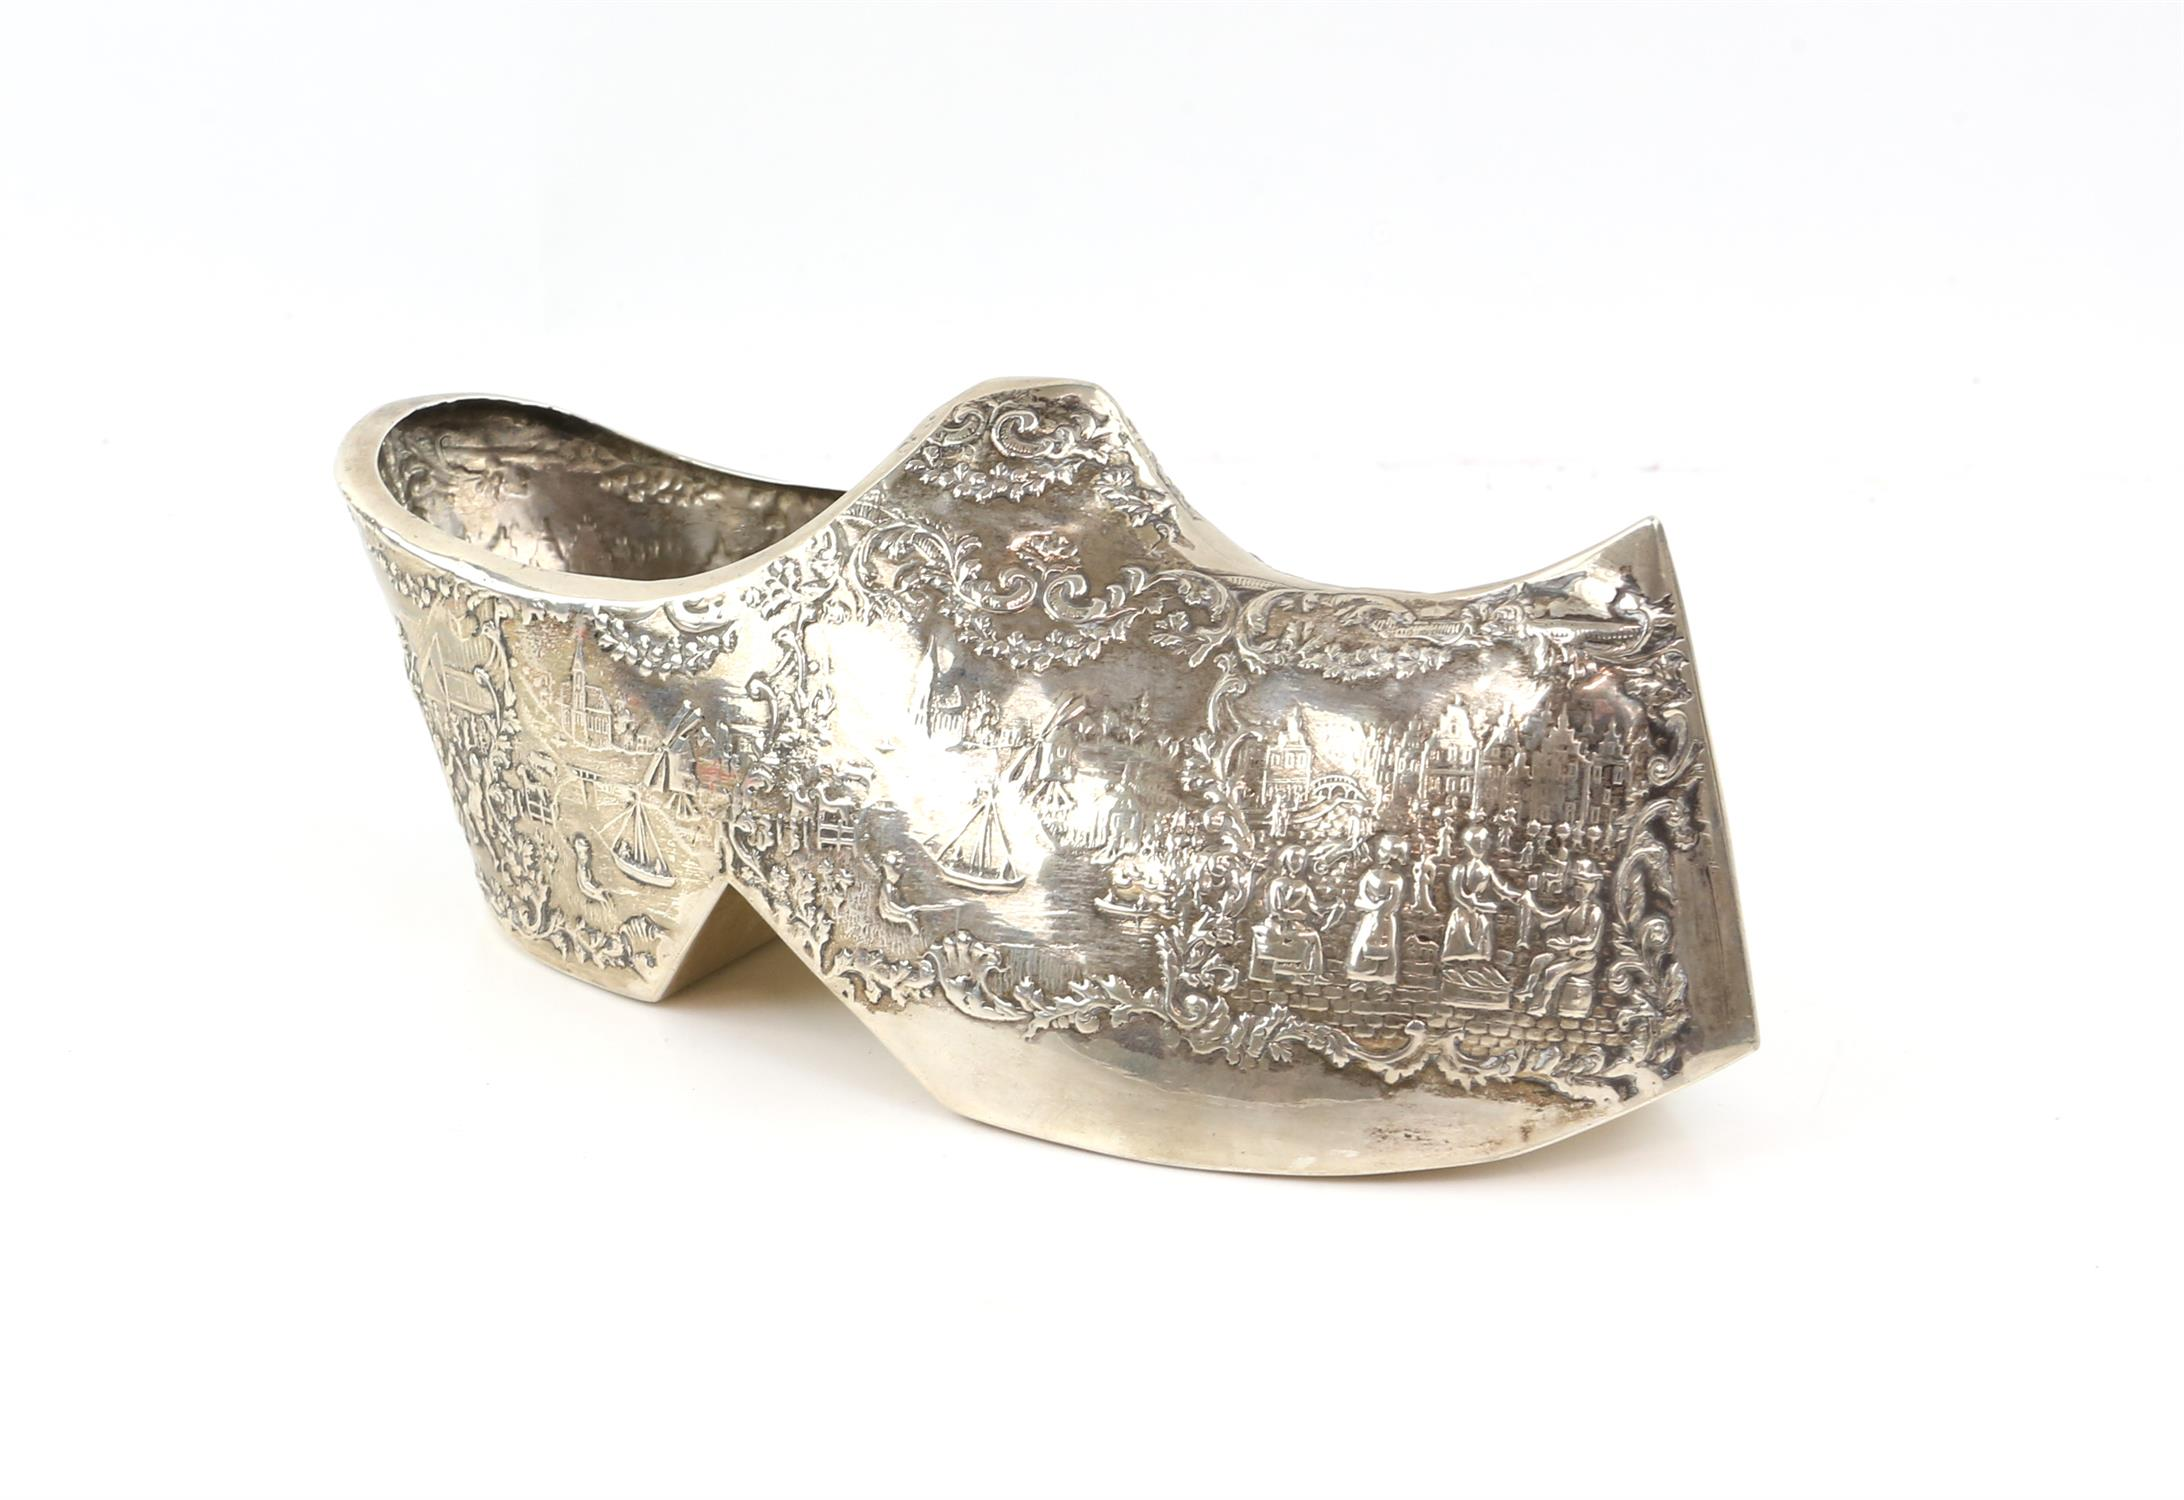 Large Dutch silver novelty model of a Clog embossed with Dutch scenes. marked for 835, 6. - Image 3 of 5